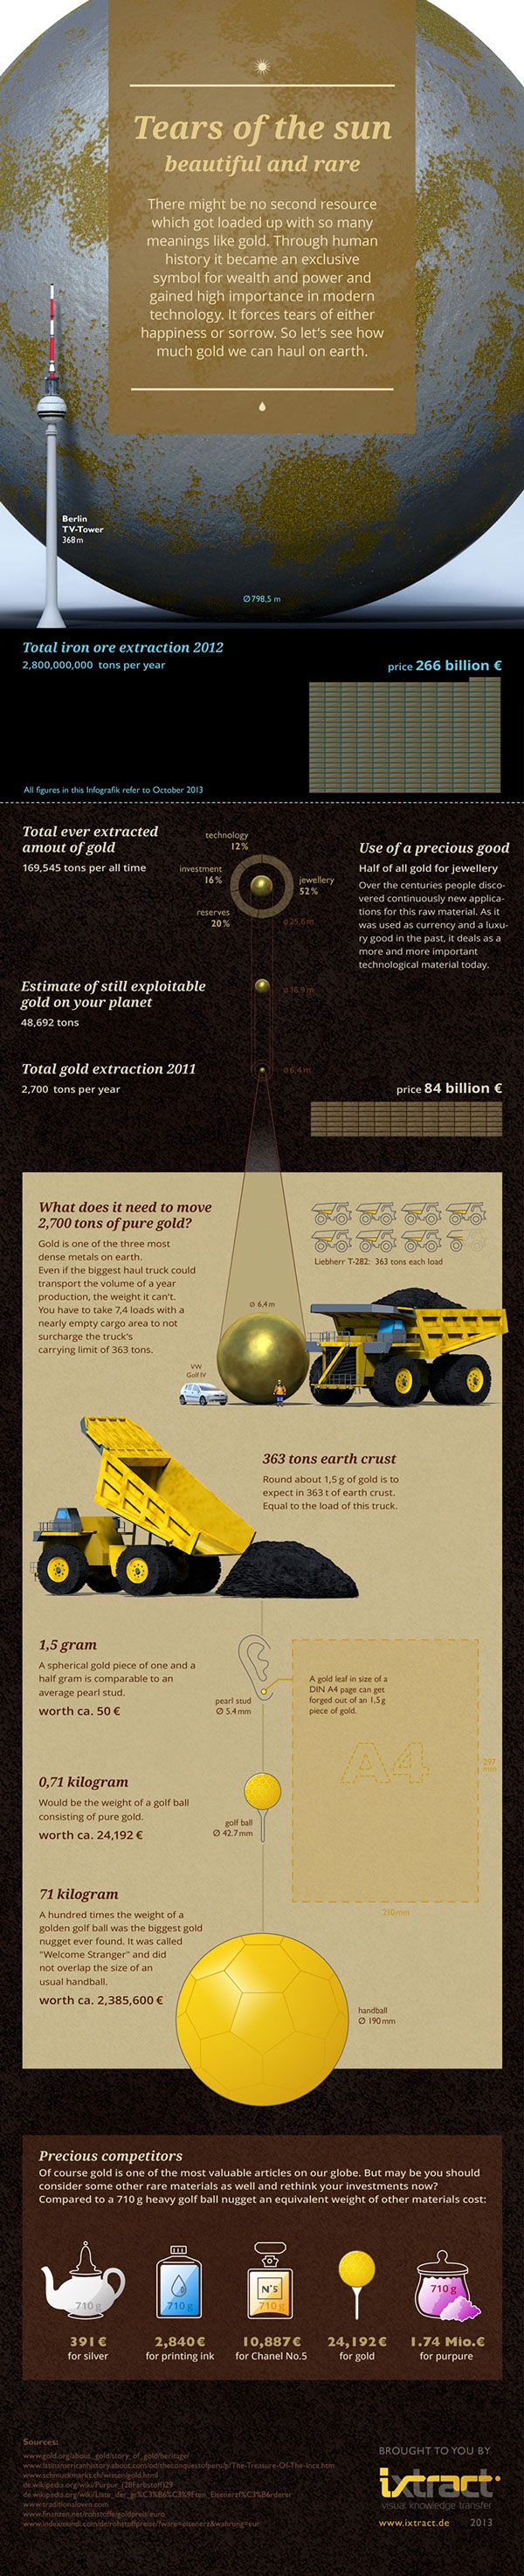 As the technology is achieving new heights and meeting new challenges day by day:the usage of gold in technology has become vital. As this infographic depicts that 12% of its use in technology like protective coating on many artificial satellites, reflectorof radio and electromagnetic waves has made the gold a metal of choice for a wide variety of industries.  Source: https://www.behance.net/gallery/12262465/ixtract-Tears-of-the-sun